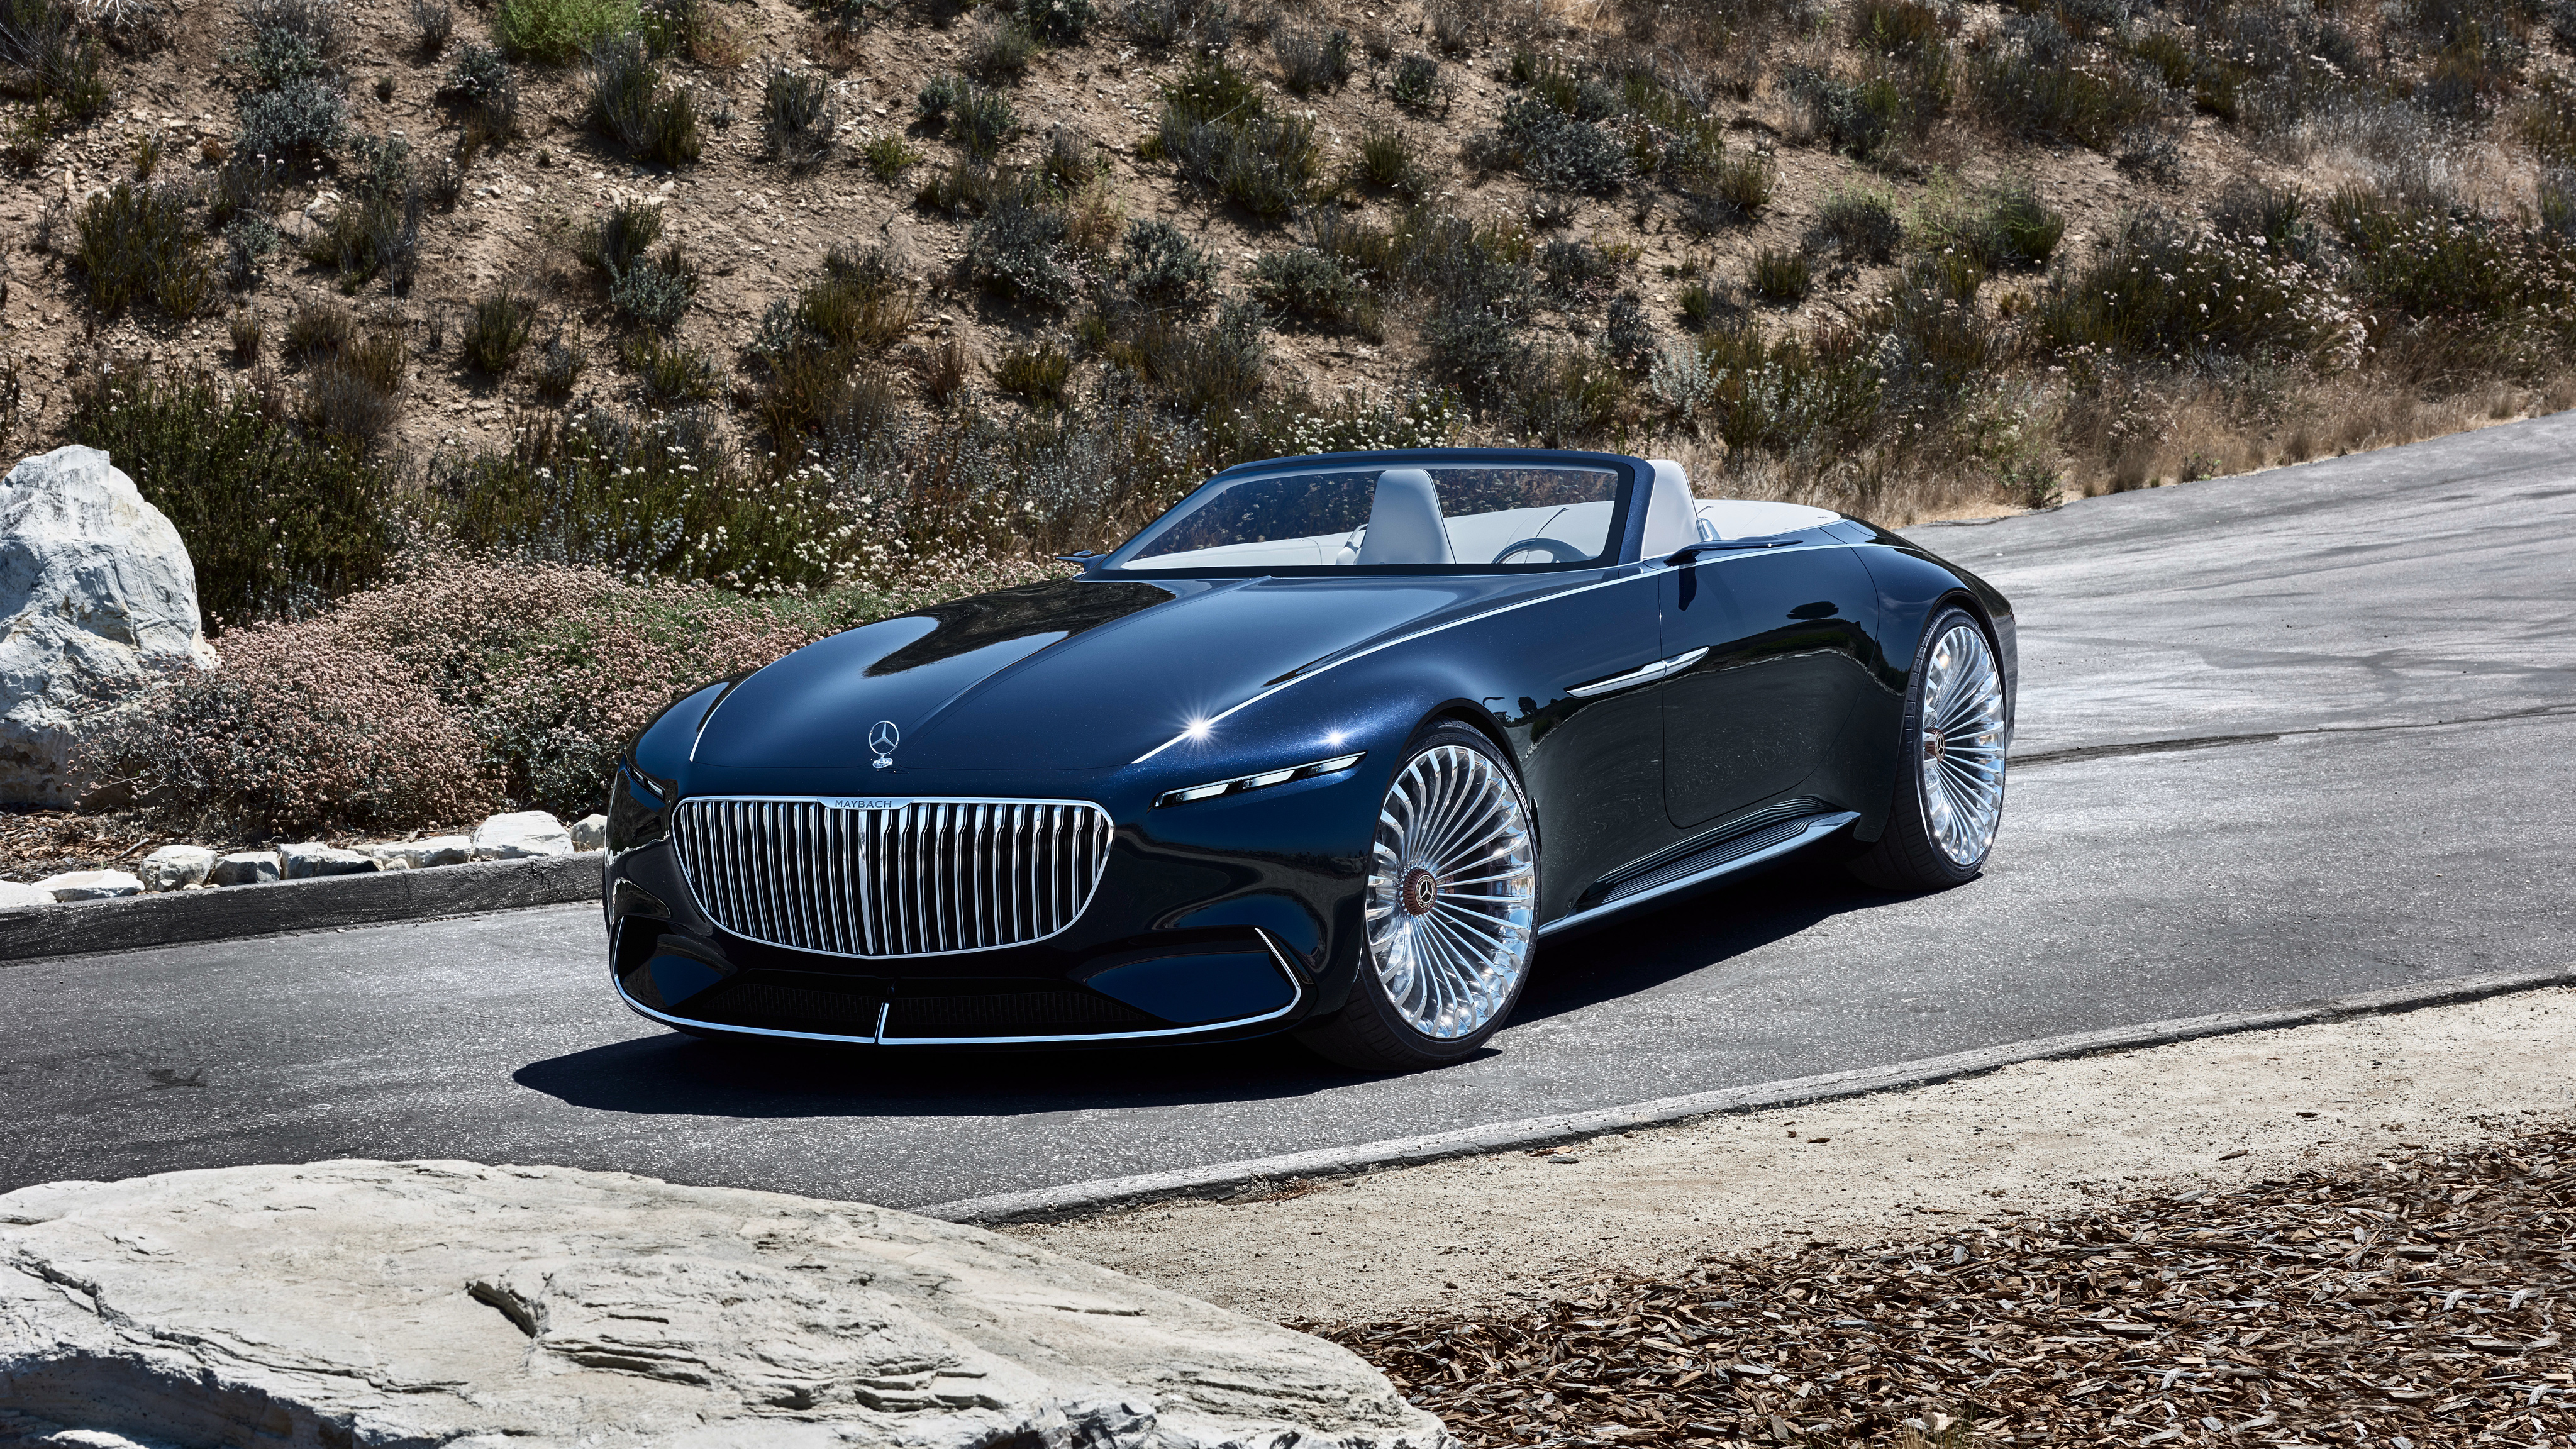 Mercedes Car Wallpapers For Windows 7 2018 Vision Mercedes Maybach 6 Cabriolet 7 Wallpaper Hd